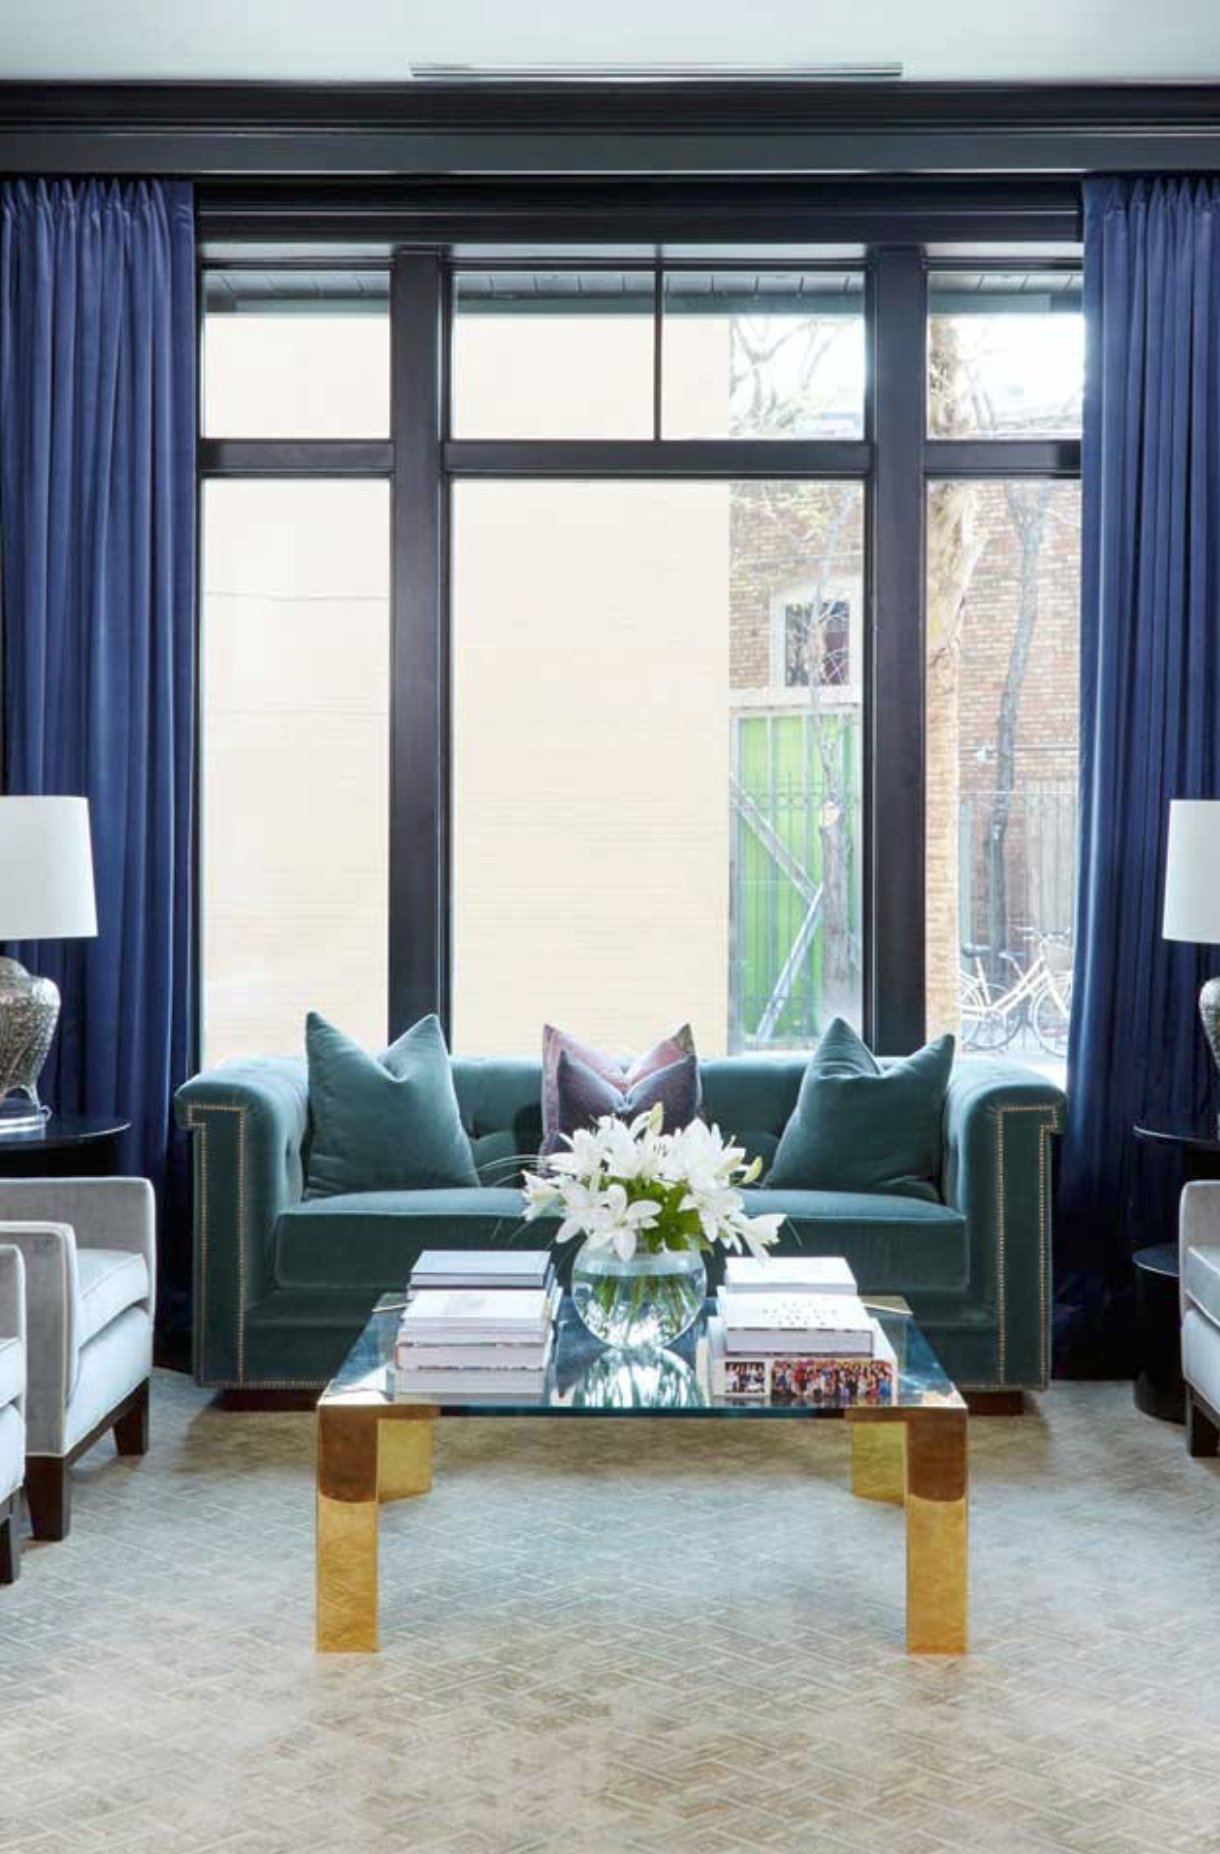 coffee table in front of window with blue curtains